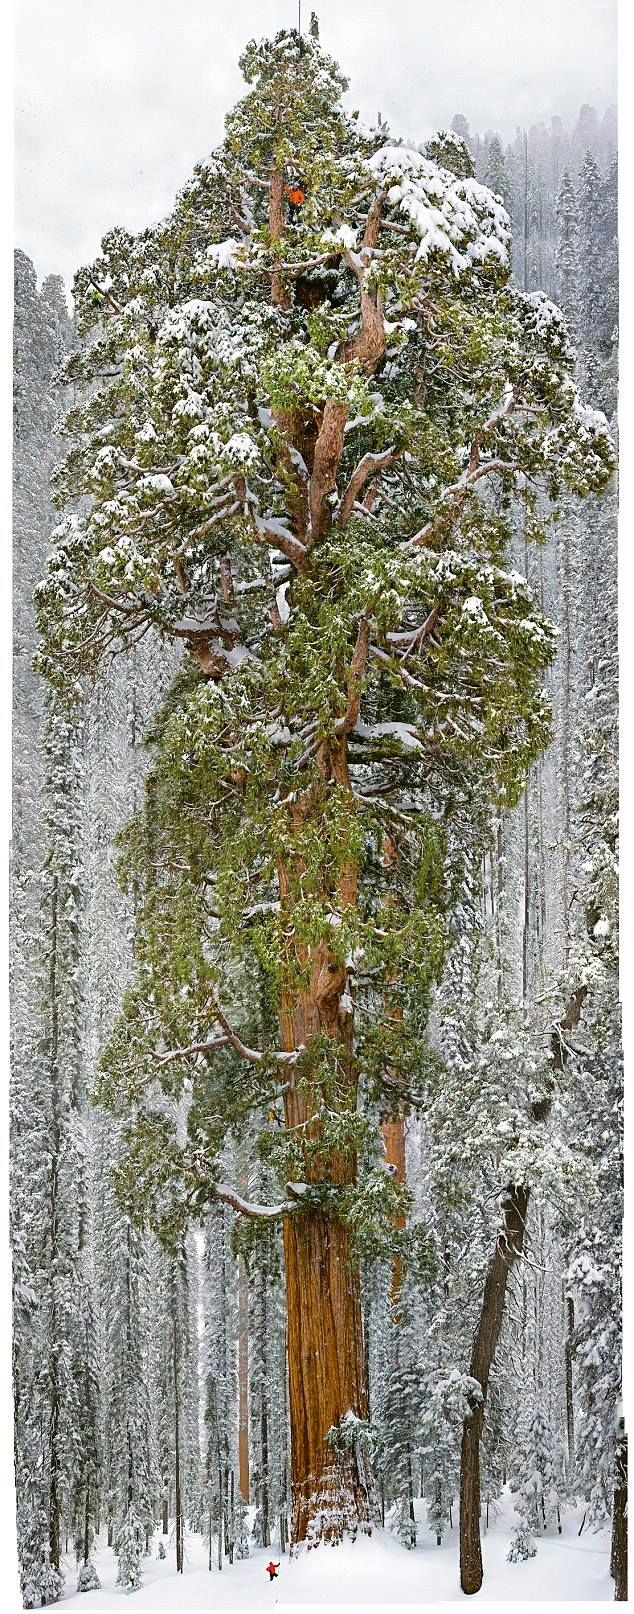 The President - the most massive tree on Earth. (Sequoia National Park, 3,200yrs old, 247ft tall) The tallest tree in the world is a California redwood standing 379ft tall. .... that tiny red dot at the bottom on the left is a person!